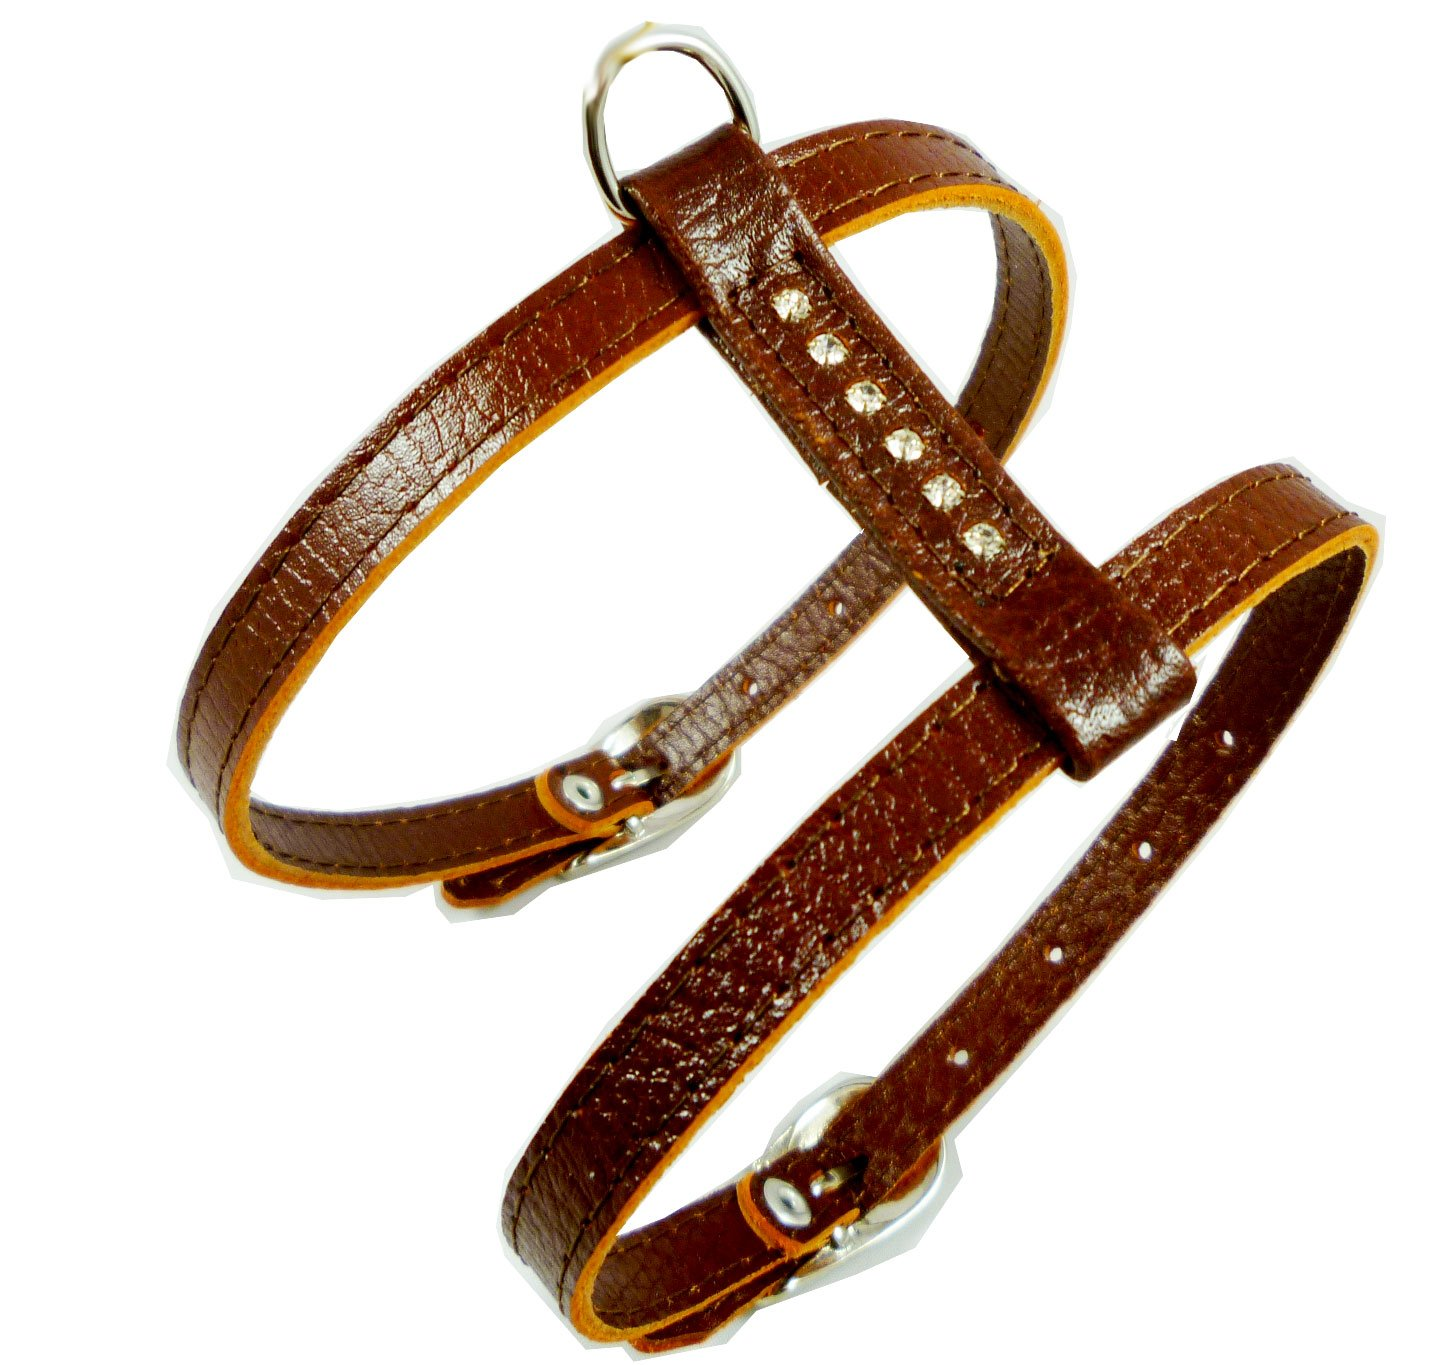 Genuine Leather Dog Harness for Toy Breeds X-small. 10 -13  Chest Circumference Rhinestones (Brown)